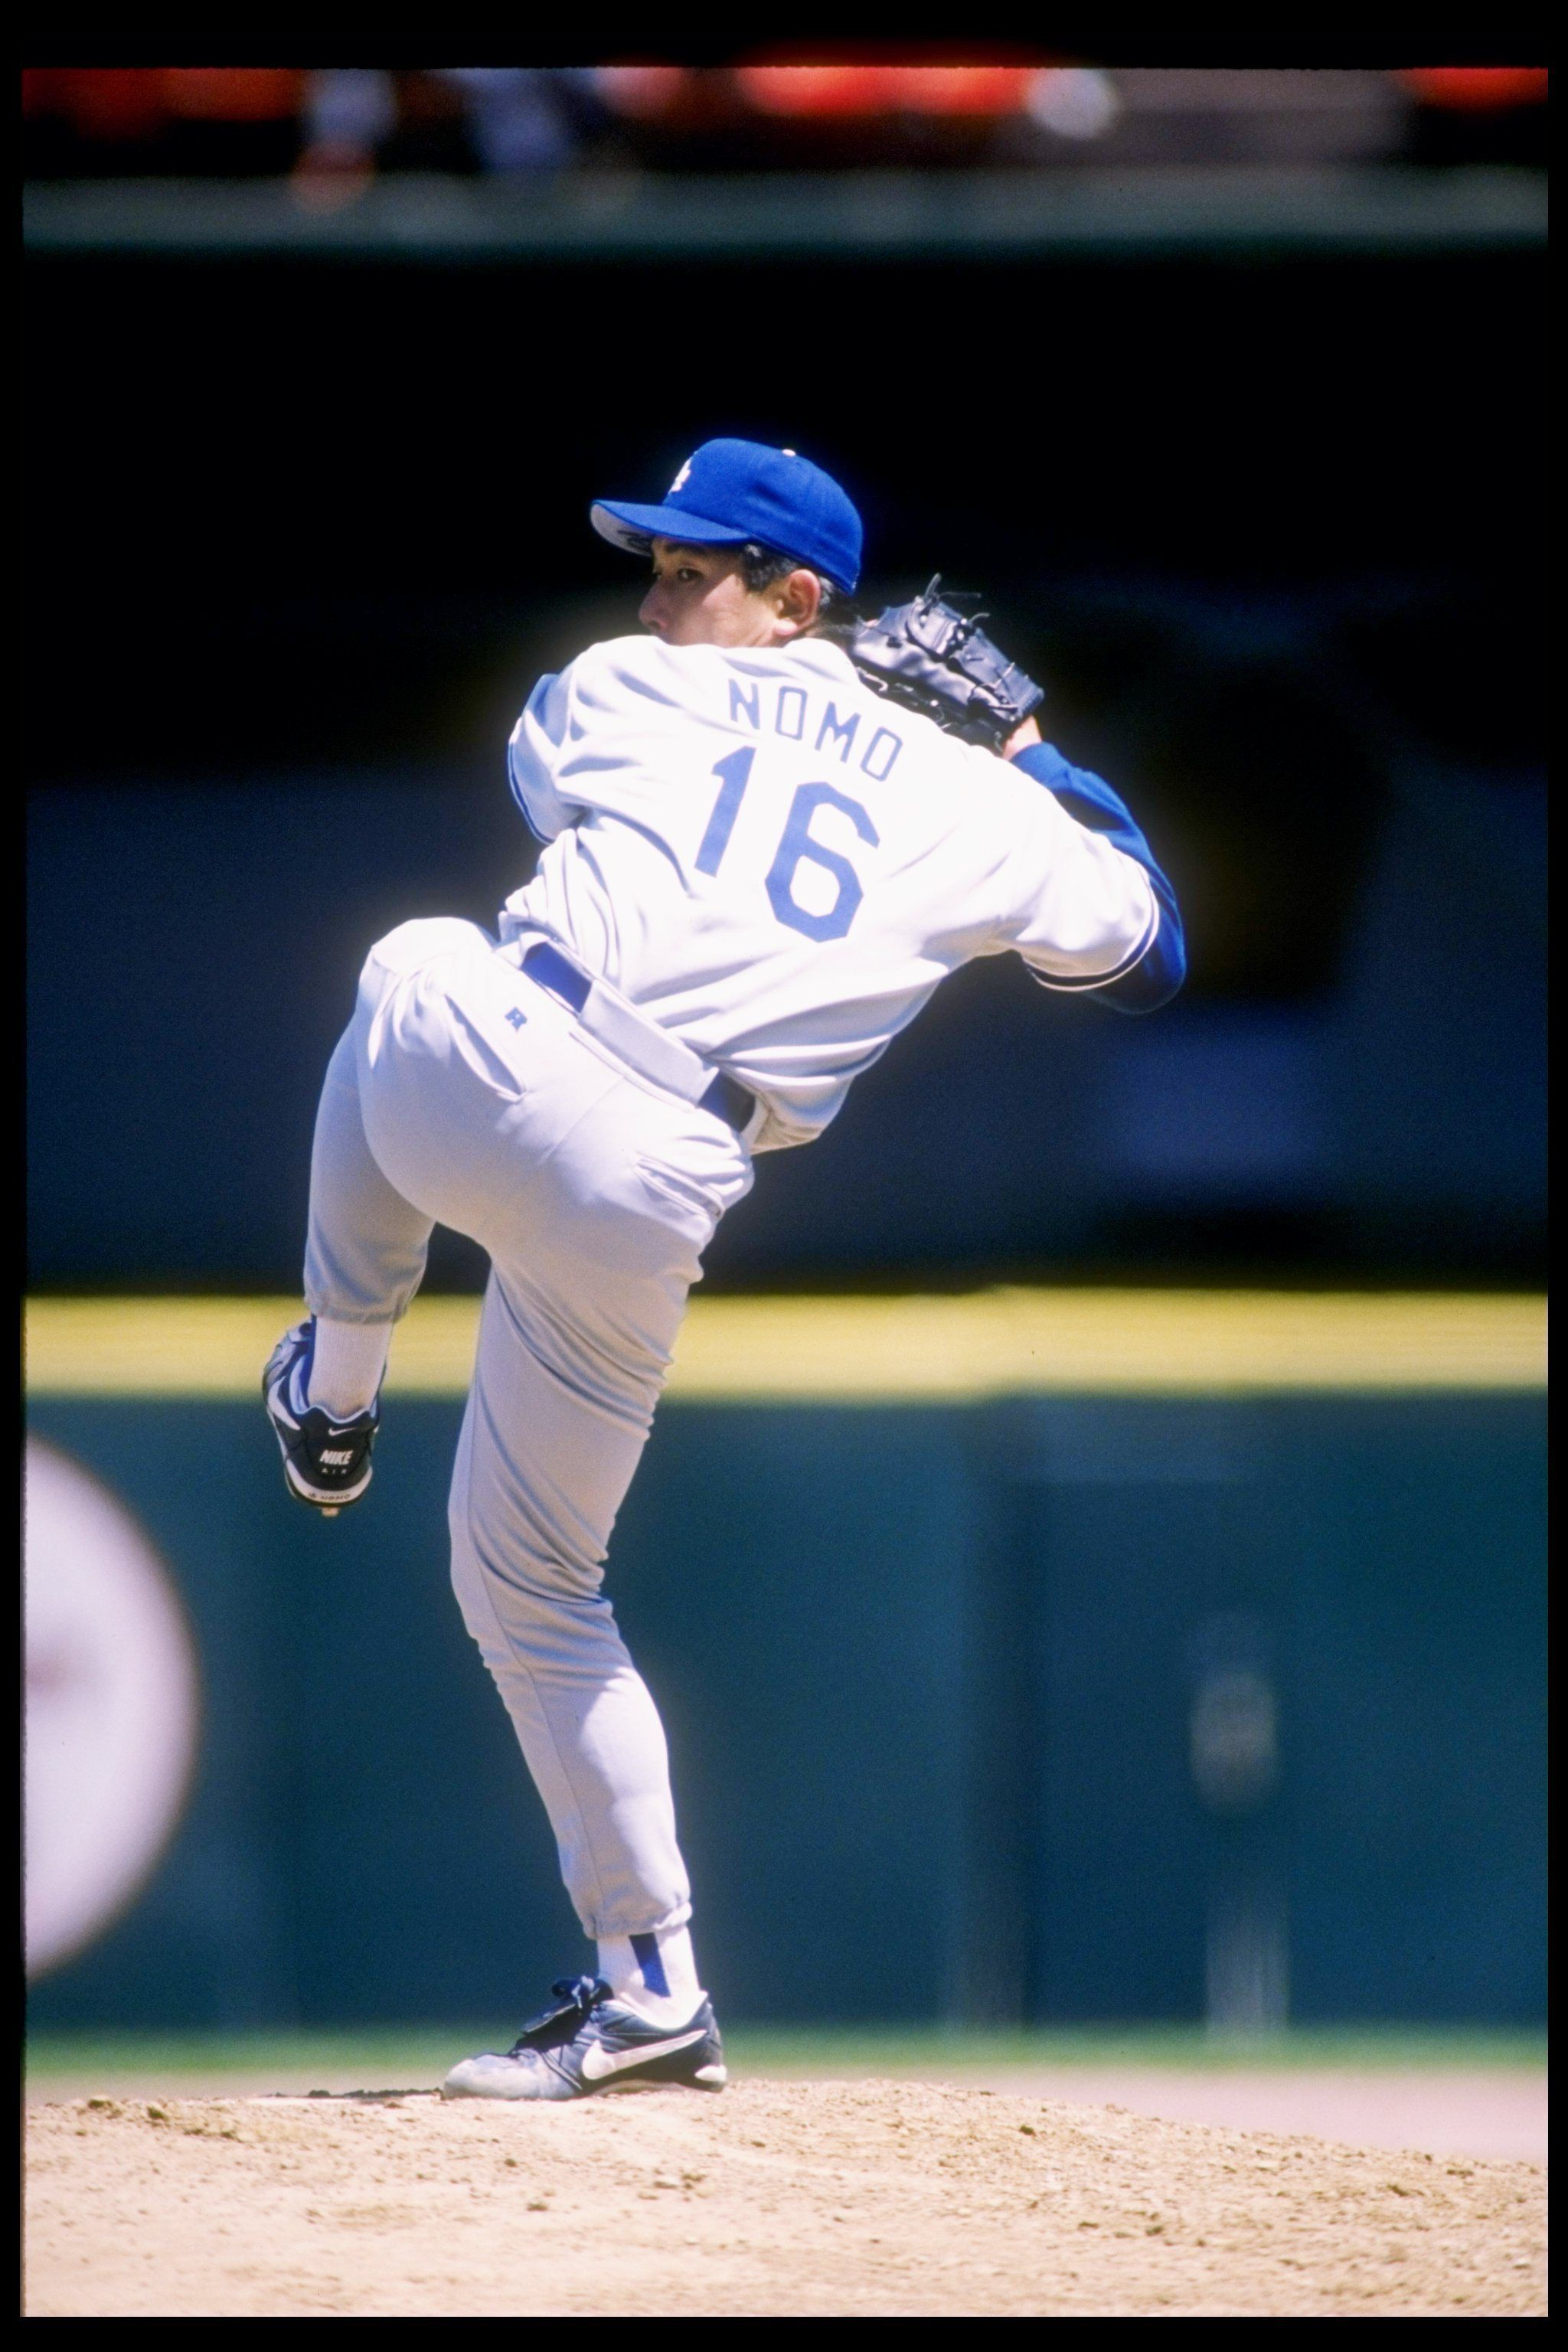 Hideo Nomo - Japanese Pitchers